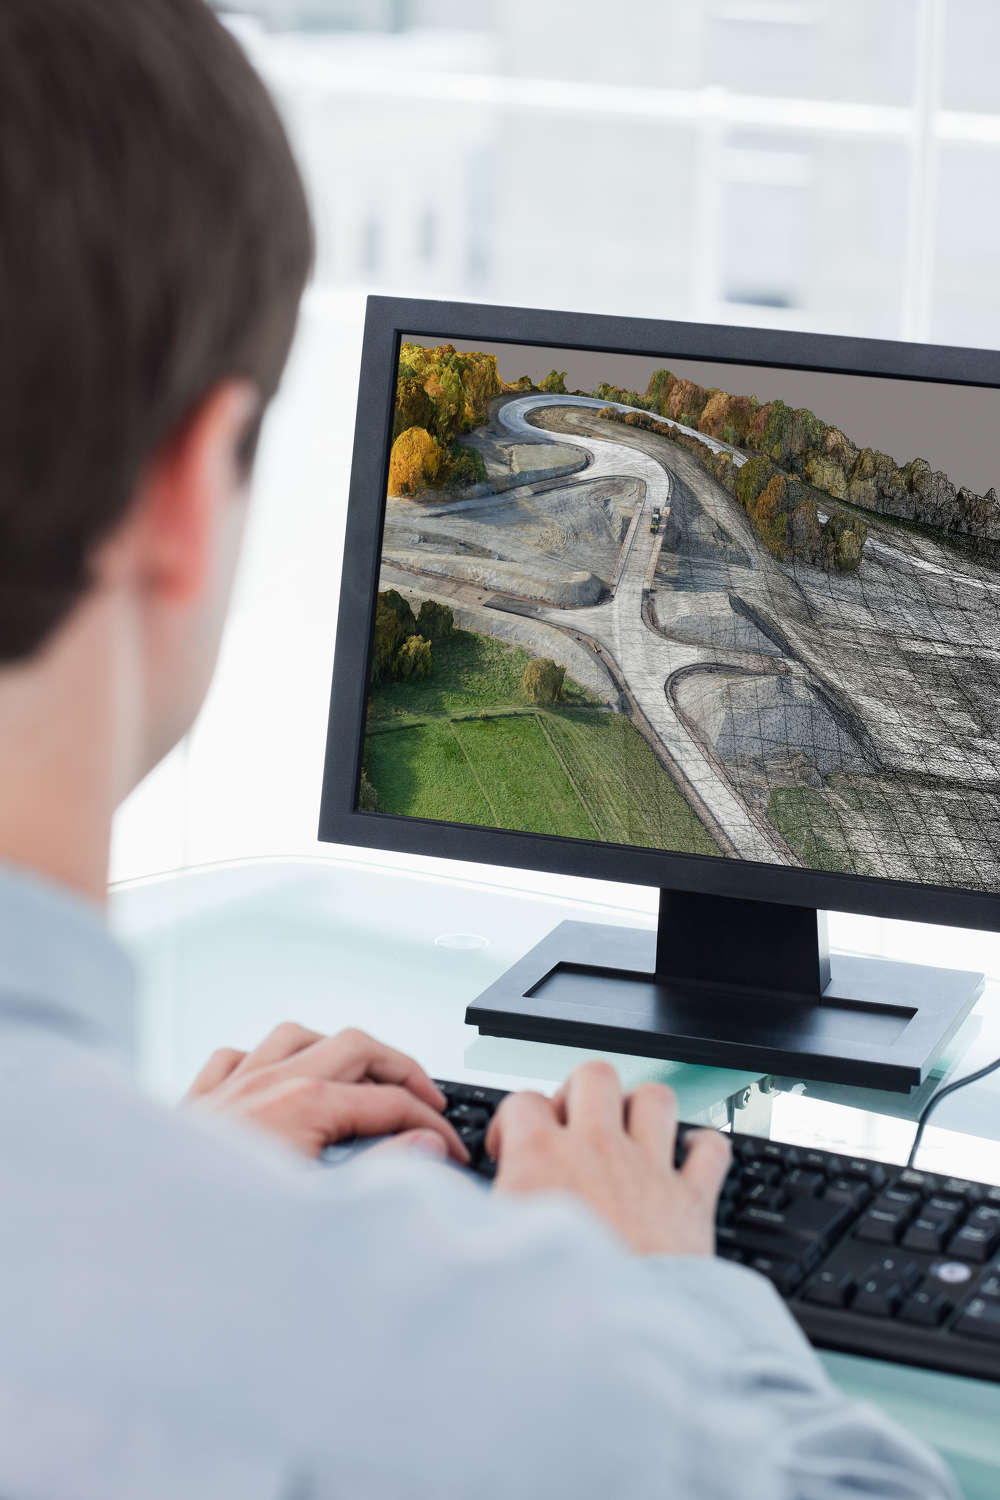 Topcon ContextCapture, powered by Bentley Systems, is a reality modeling software solution.